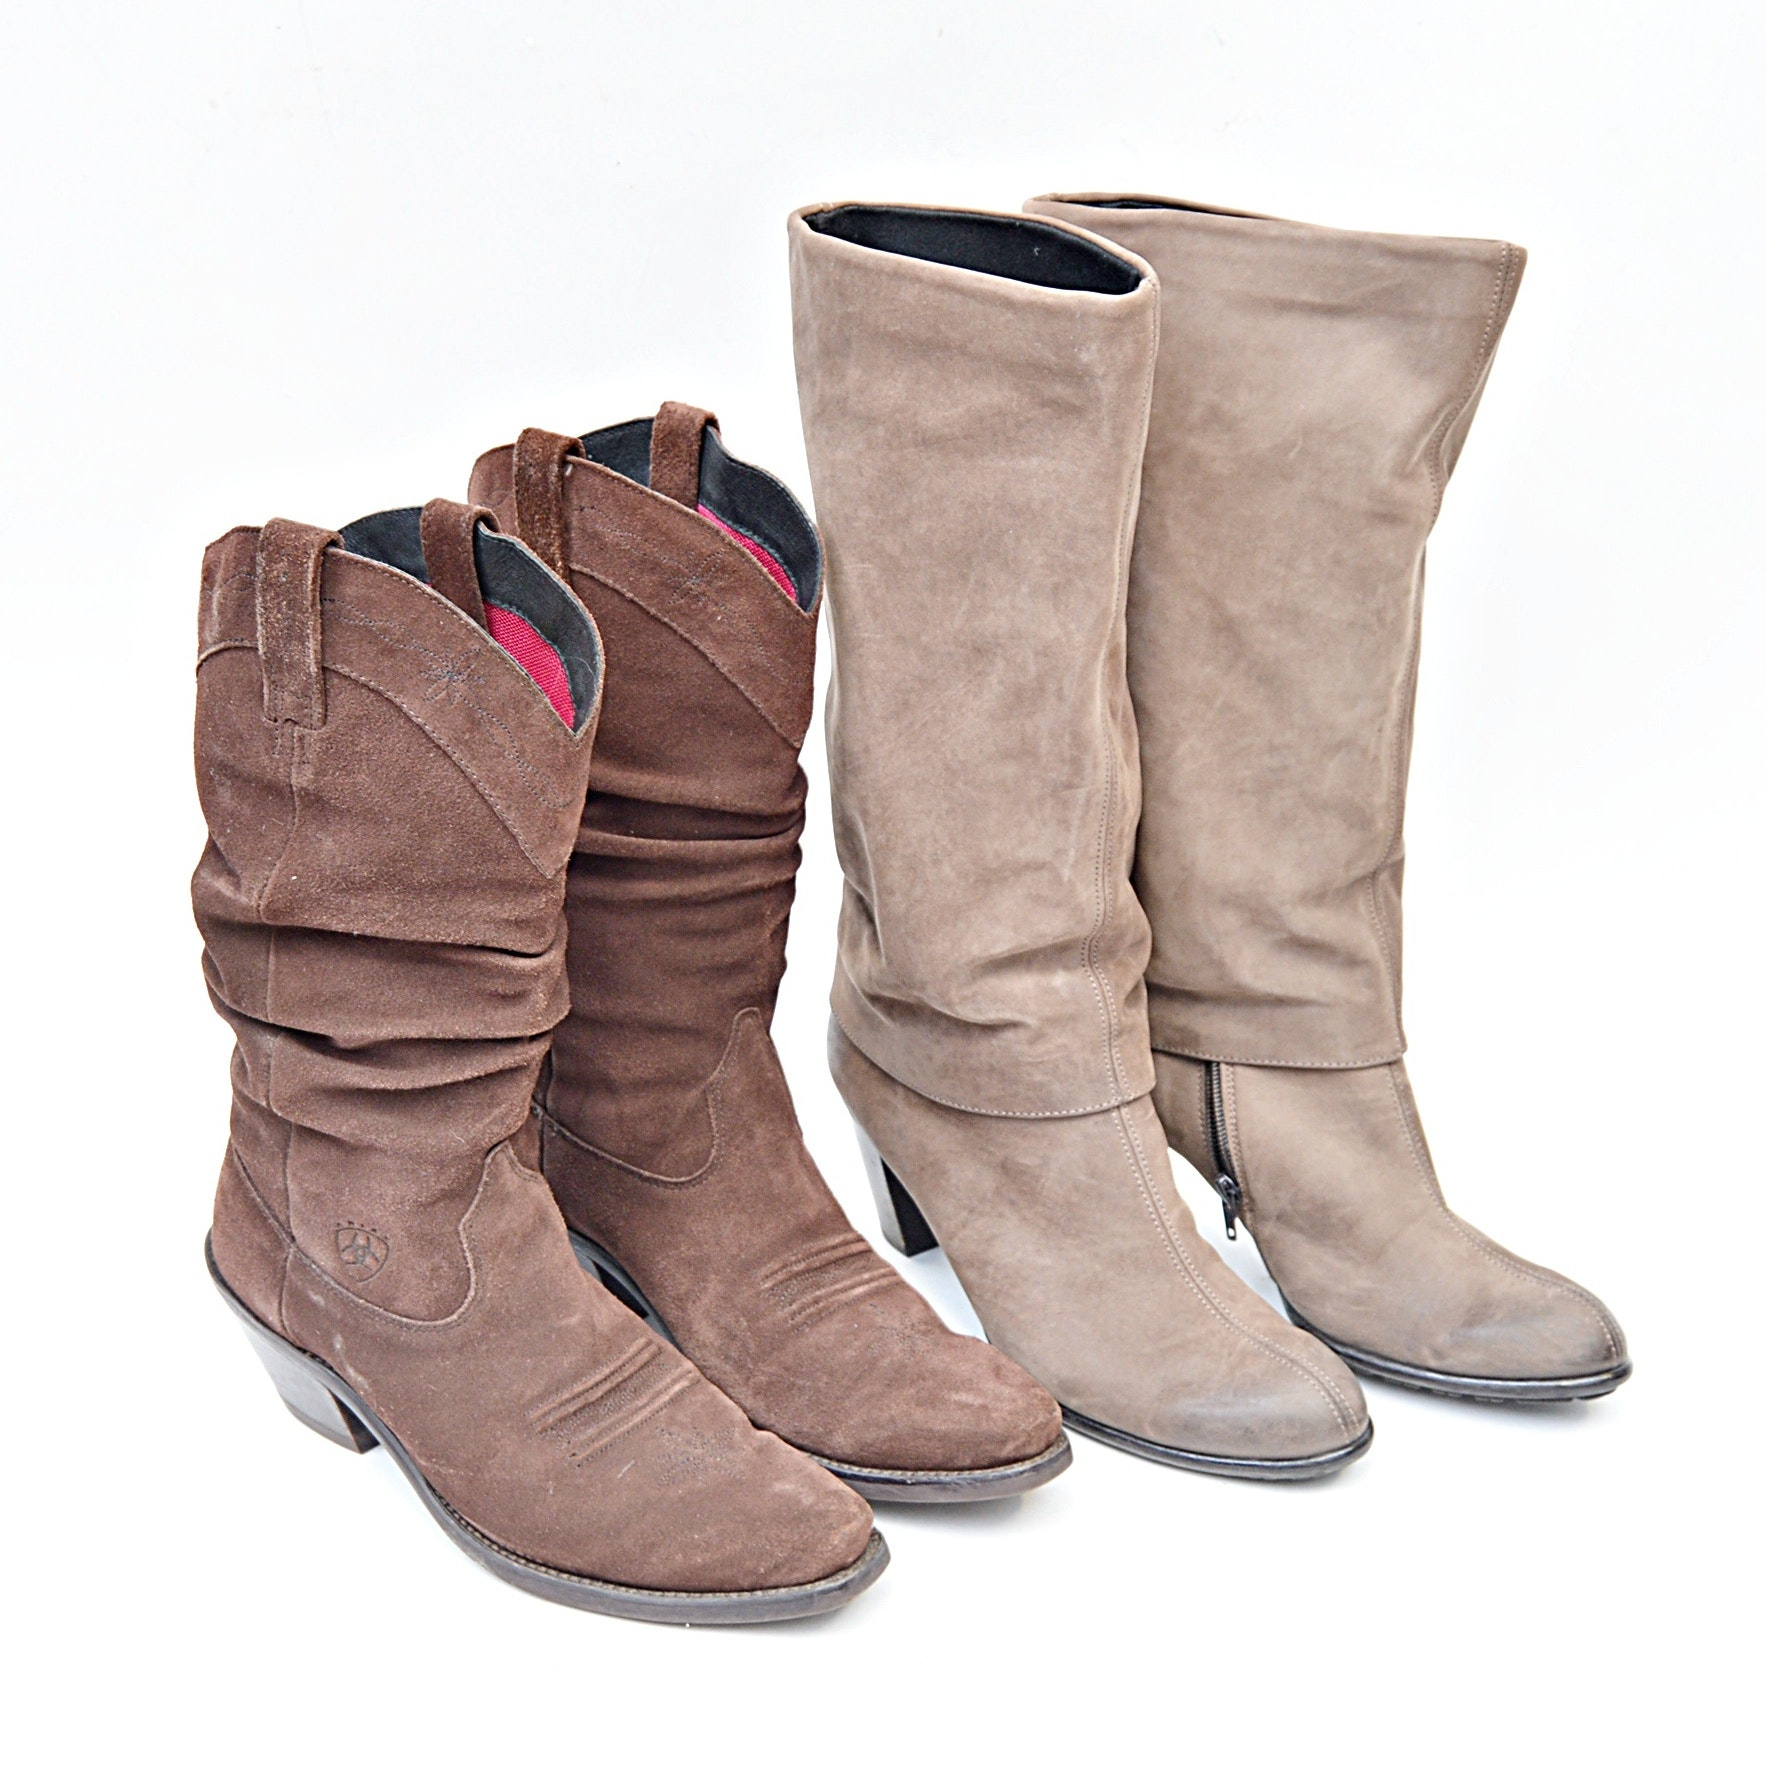 Women's Designer Boots with Ariat and Paul Green